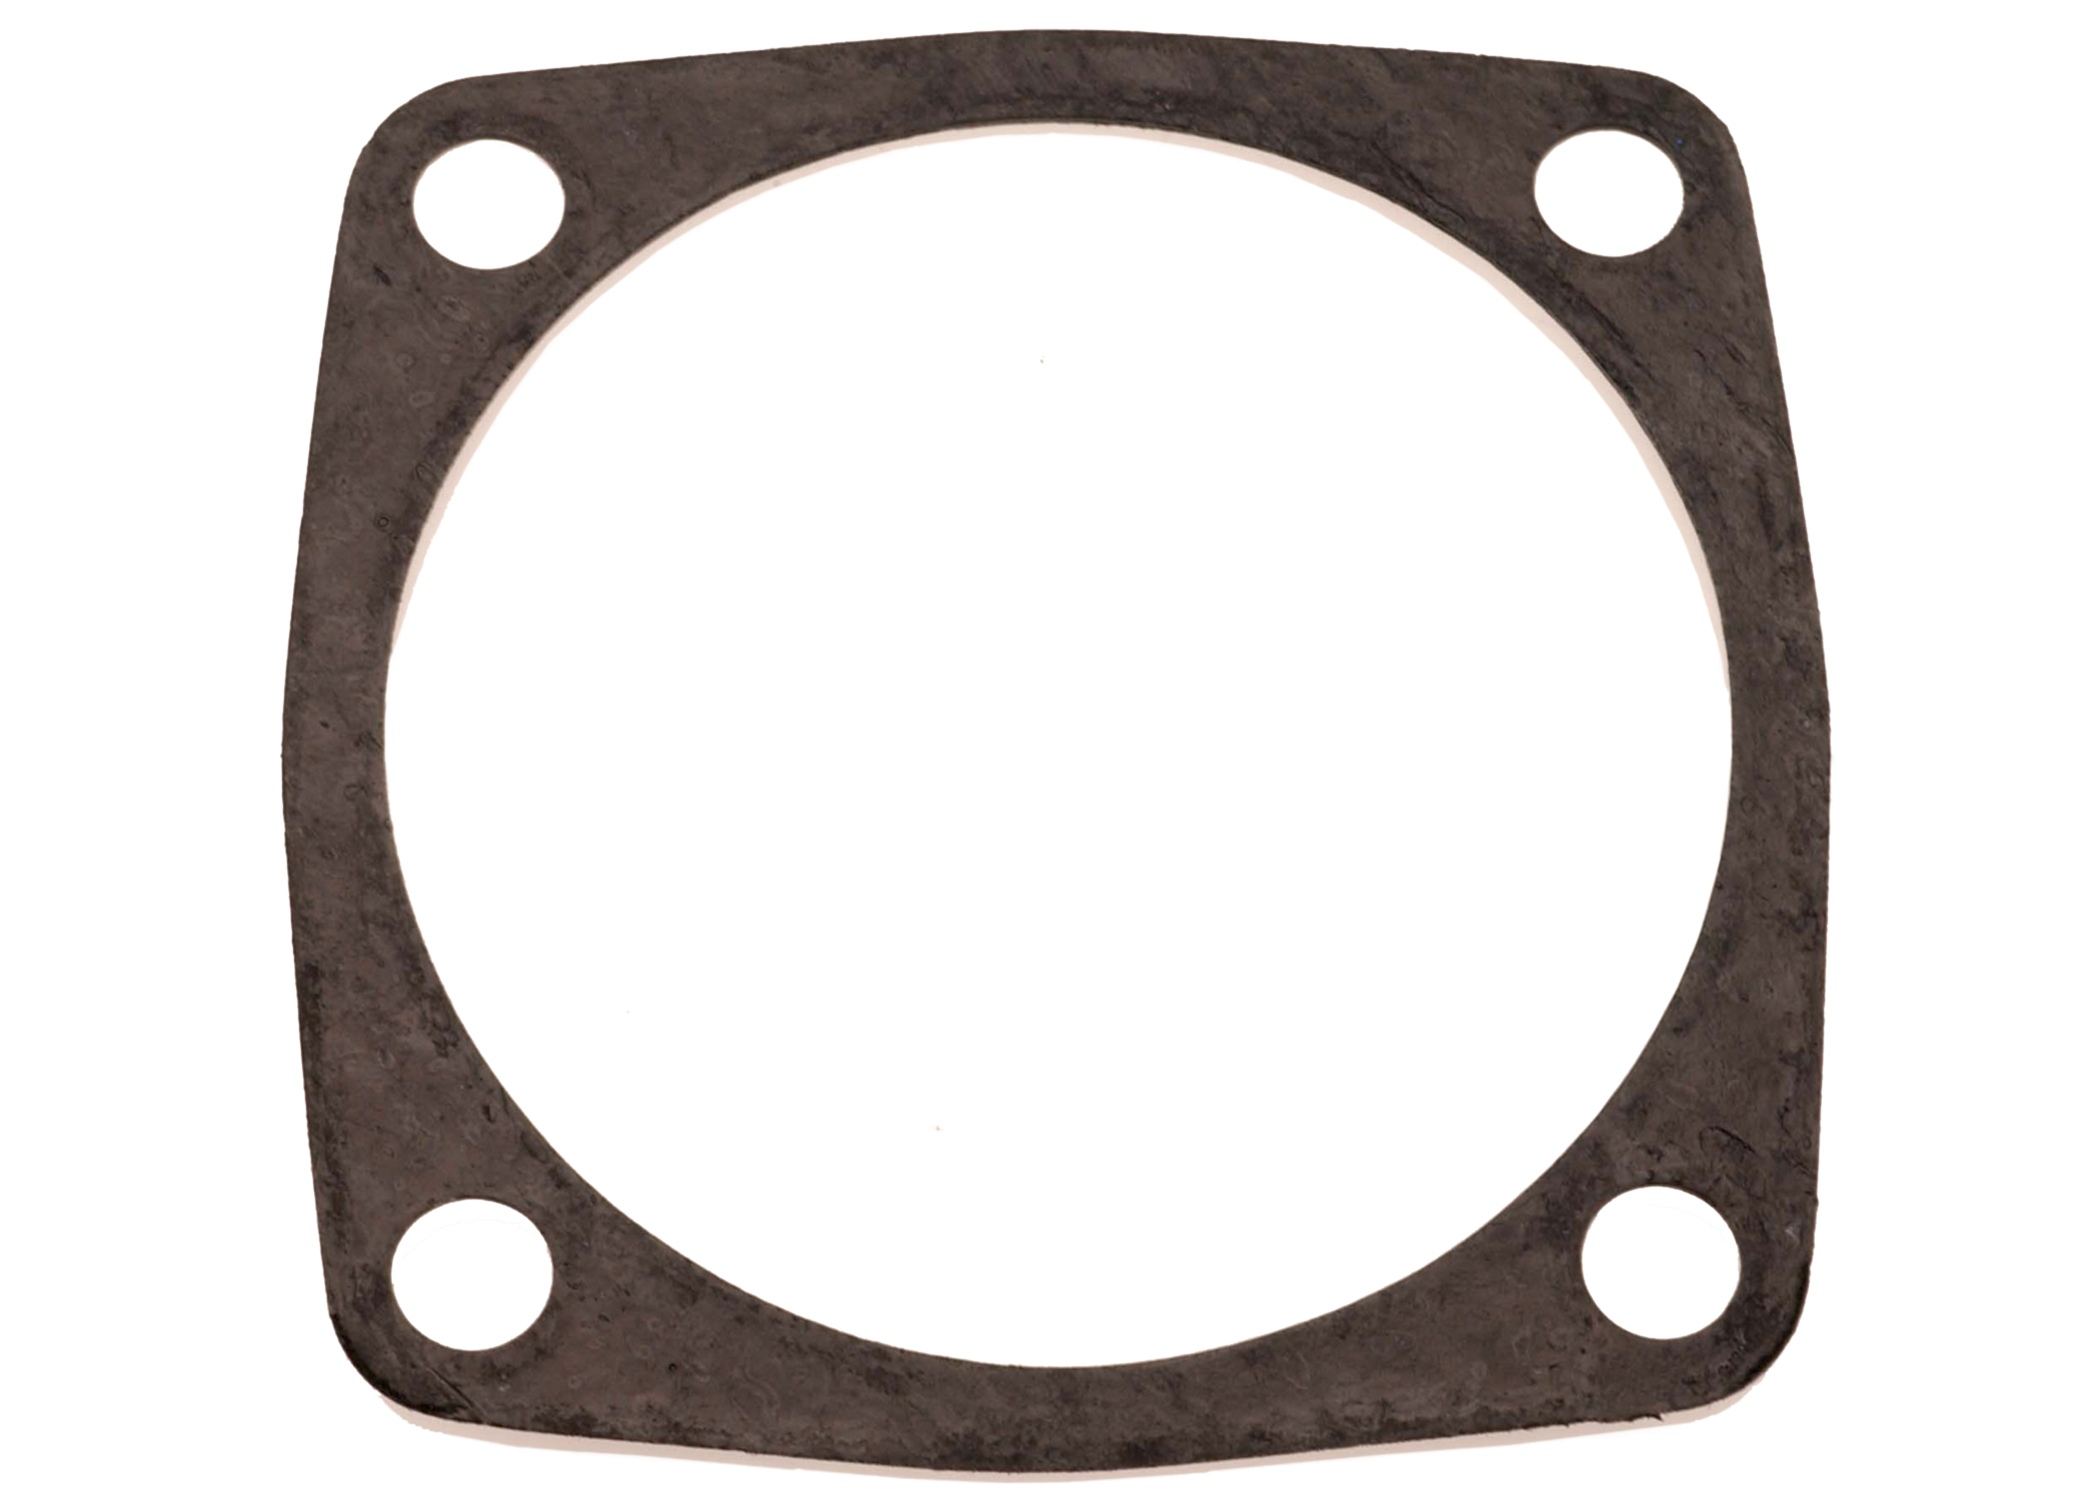 ACDELCO OE SERVICE - Governor Cover Gasket - DCB 8670381